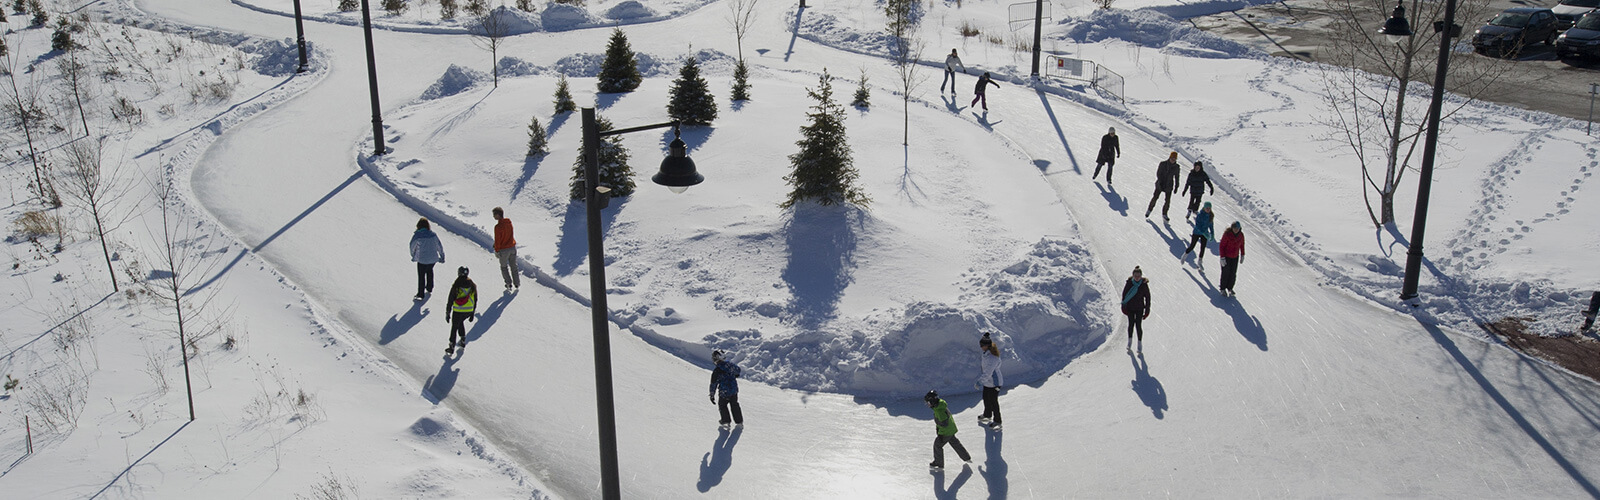 A winter scene with people ice skating along a figure-8 skating trail. Snow covers the ground. Several small evergreen trees sit in the middle of the lower half of the skating trail.